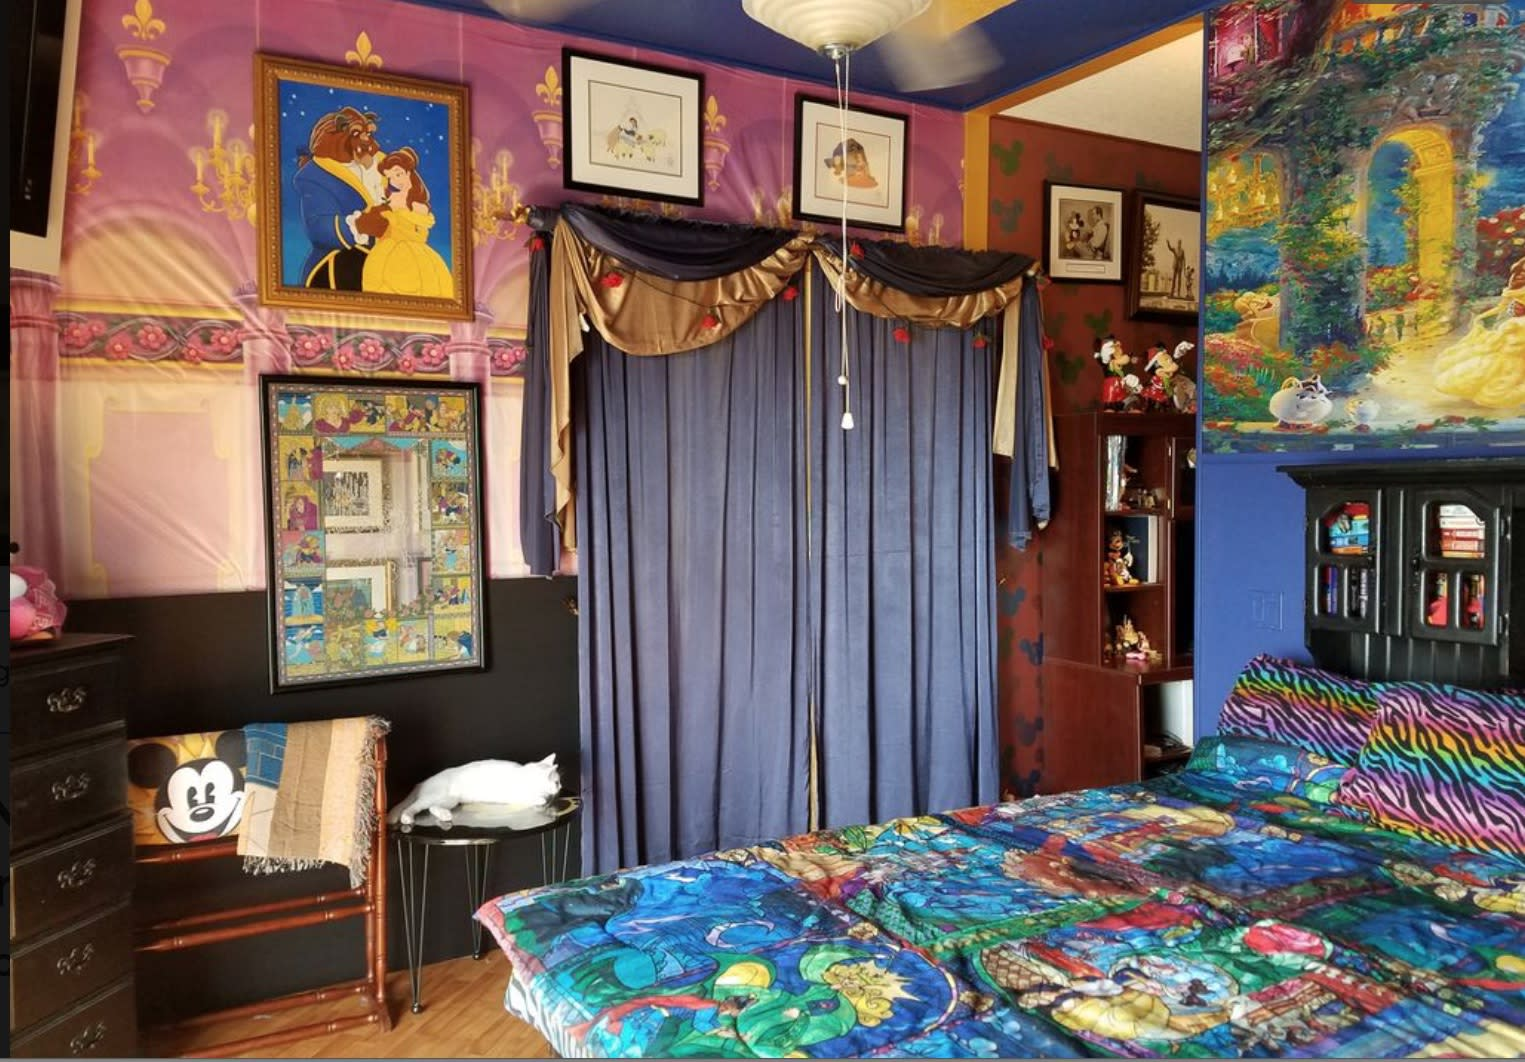 A Beauty And The Beast Themed Bedroom Courtesy Zillow